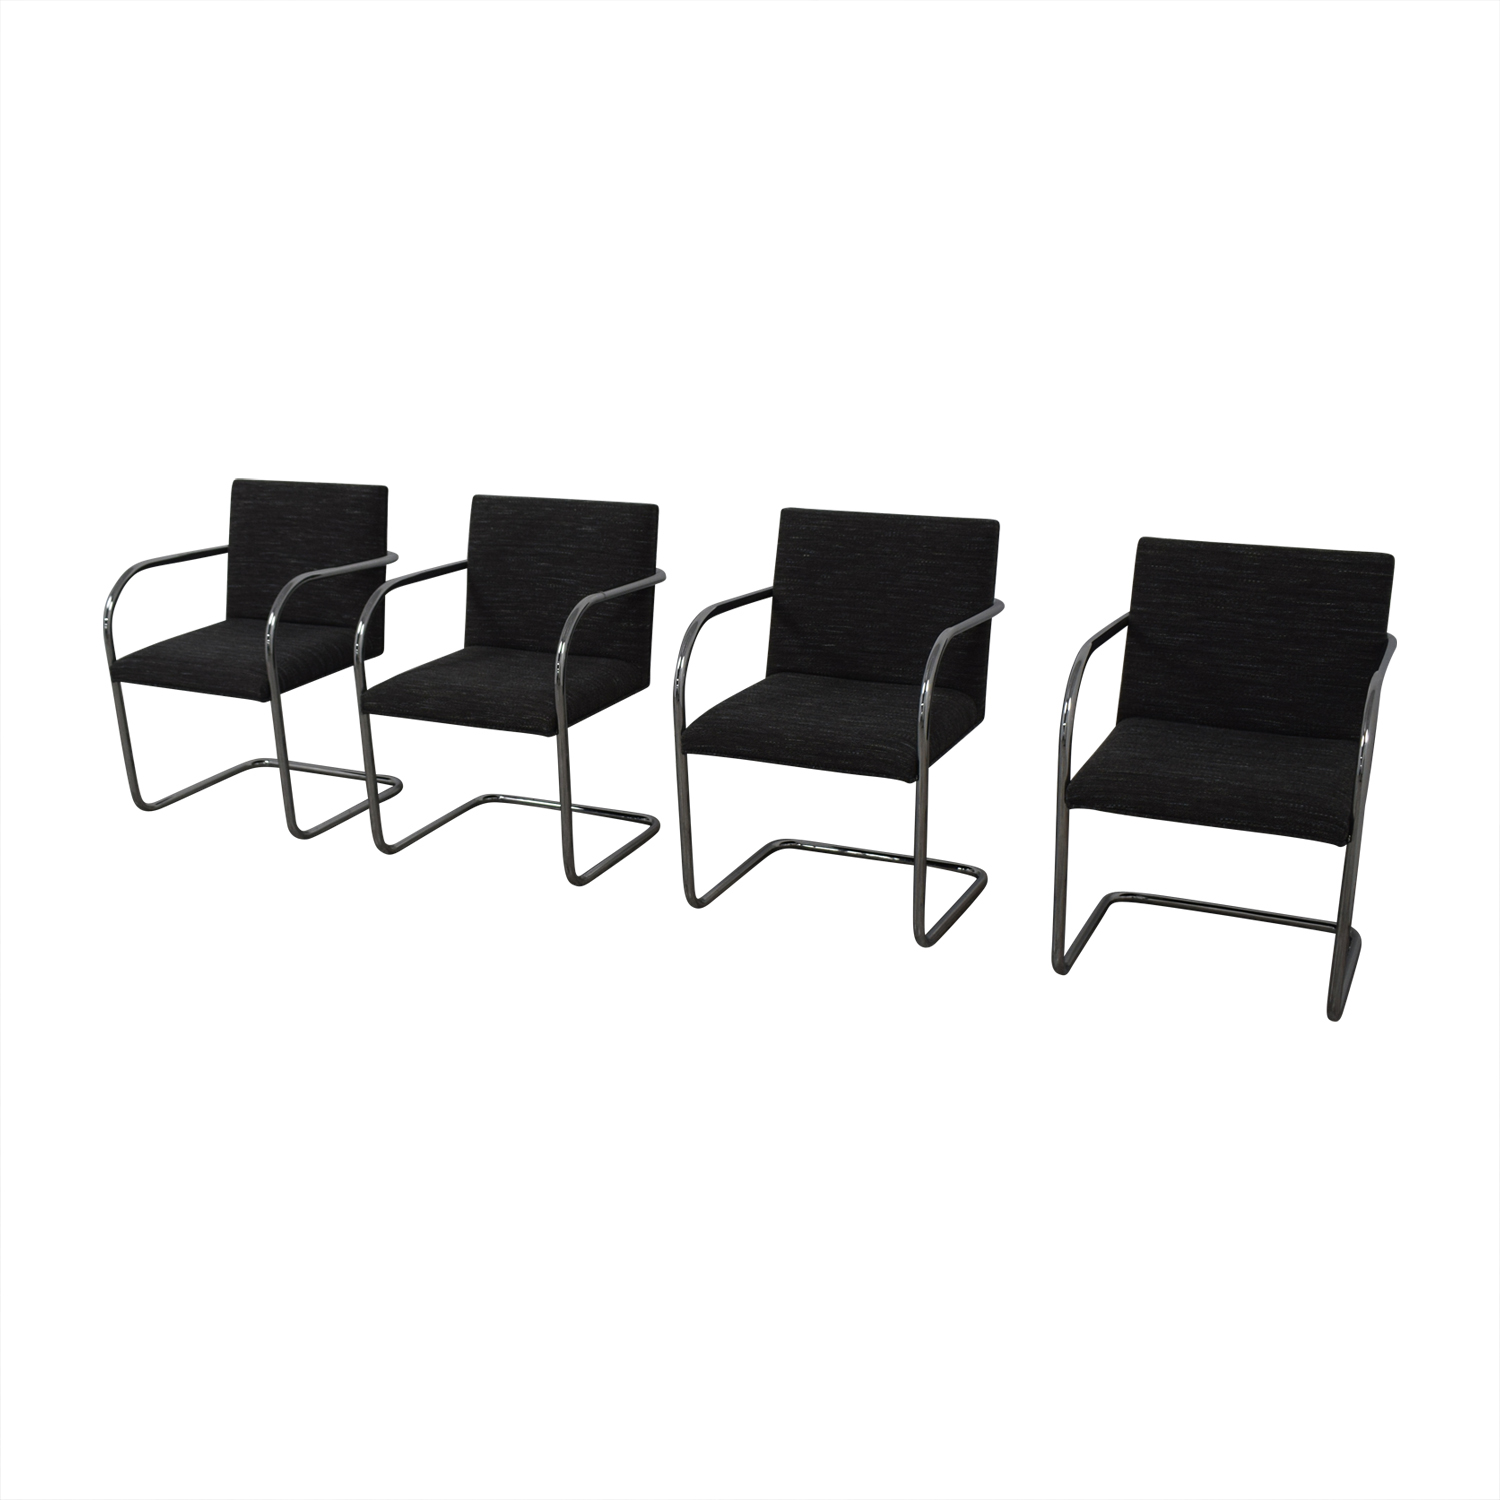 buy Chrome Upholstered Office Chairs